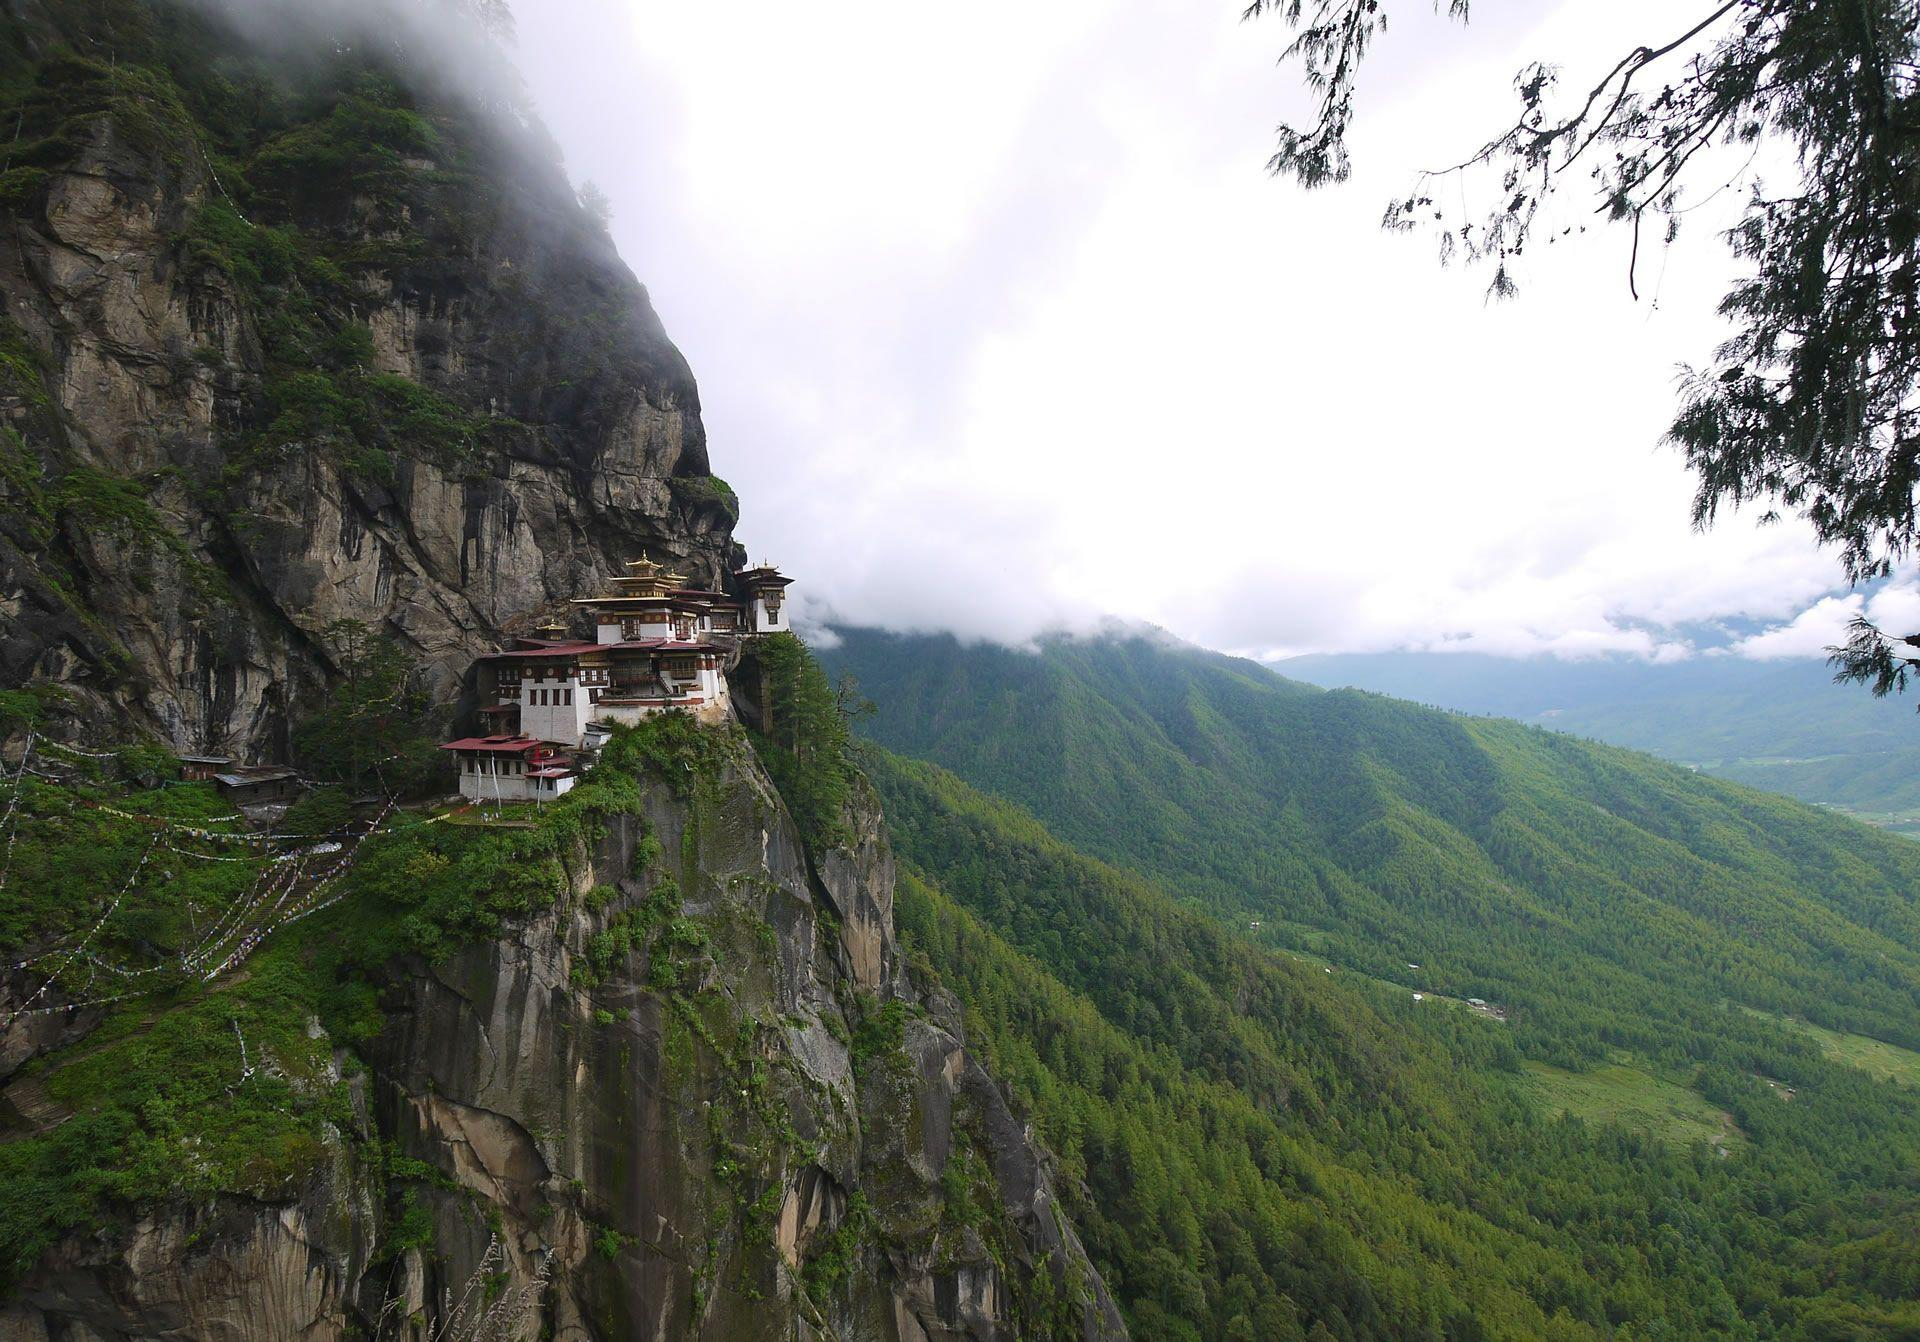 bhutan rock homes | HD Windows Wallpapers